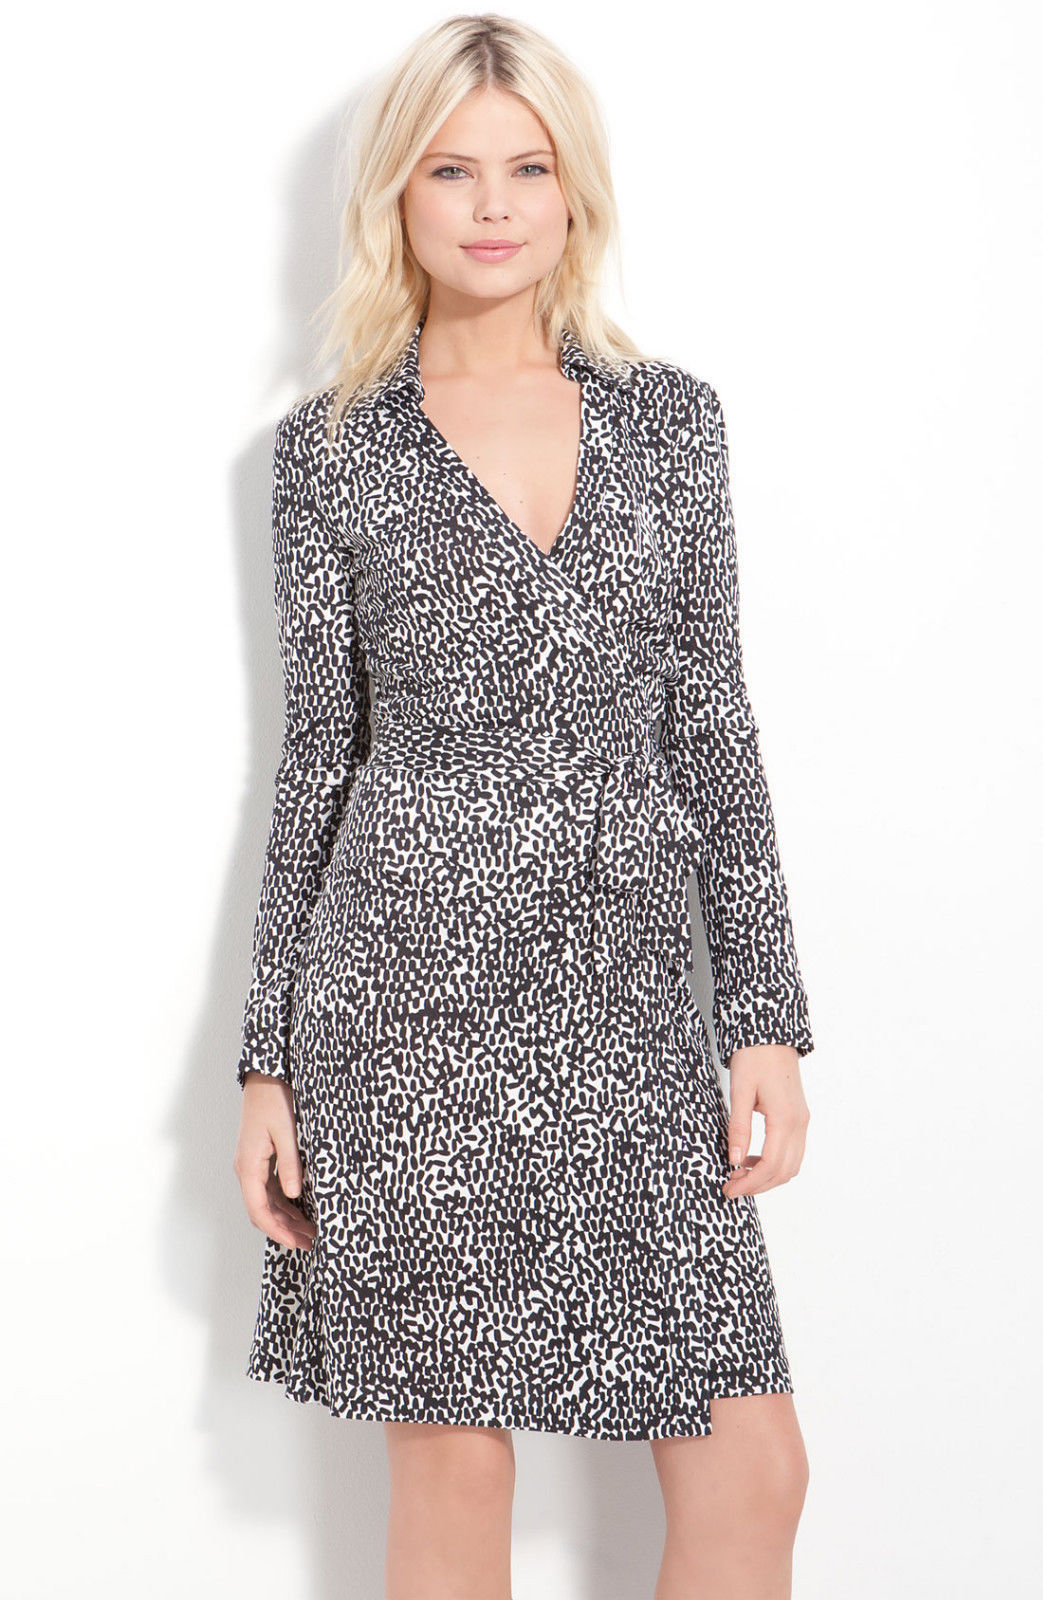 5a6e85ee5fd51 Diane Von Furstenberg New Jeanne Two Tiny and 50 similar items. t2ec16f  y0fizfbsmsvbsrndrf 7q 60 57